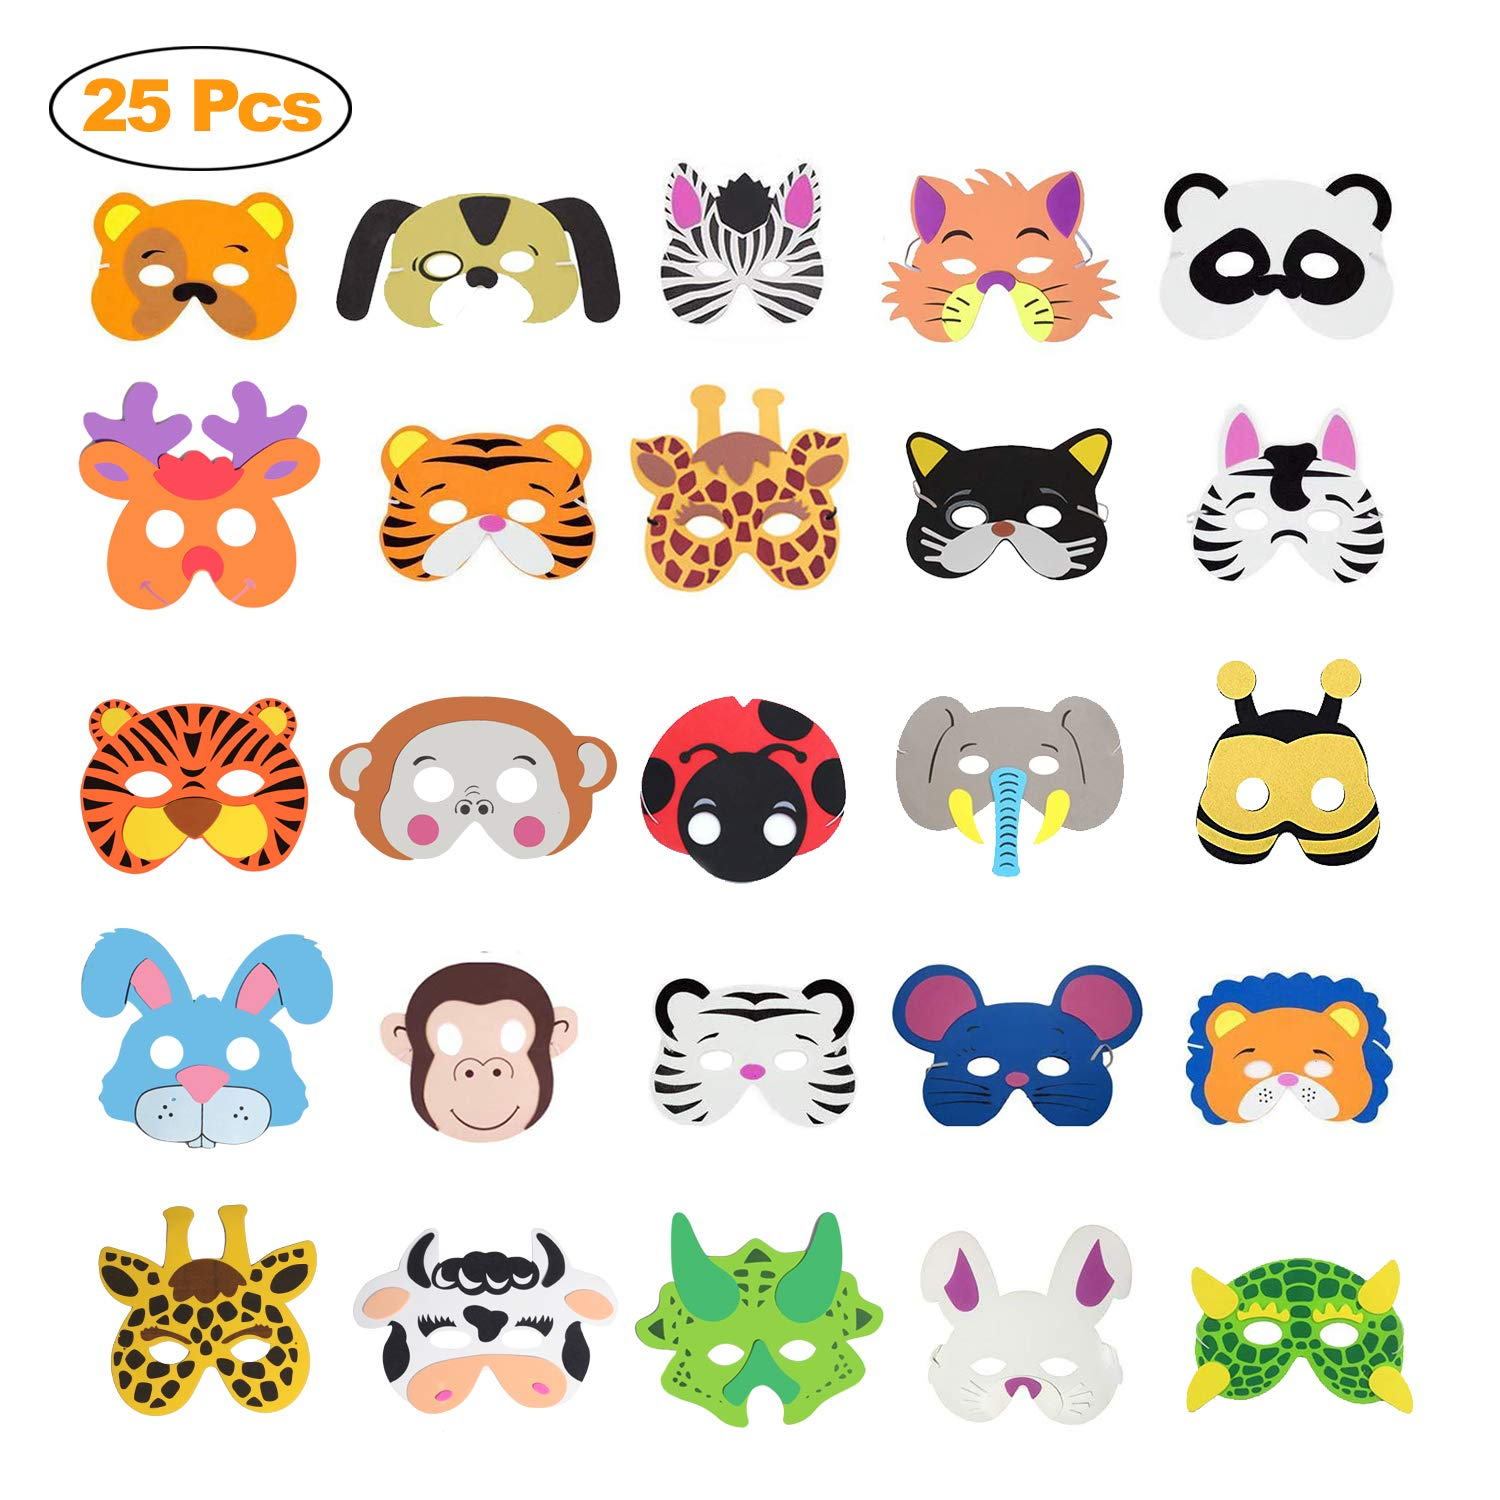 Kids Halloween Birthday Party.Funvce Kids Foam Animals Masks Eva Party Masks 25 Pieces For Masquerade Christmas Halloween Birthday Party School Plays Dogs Co Uk